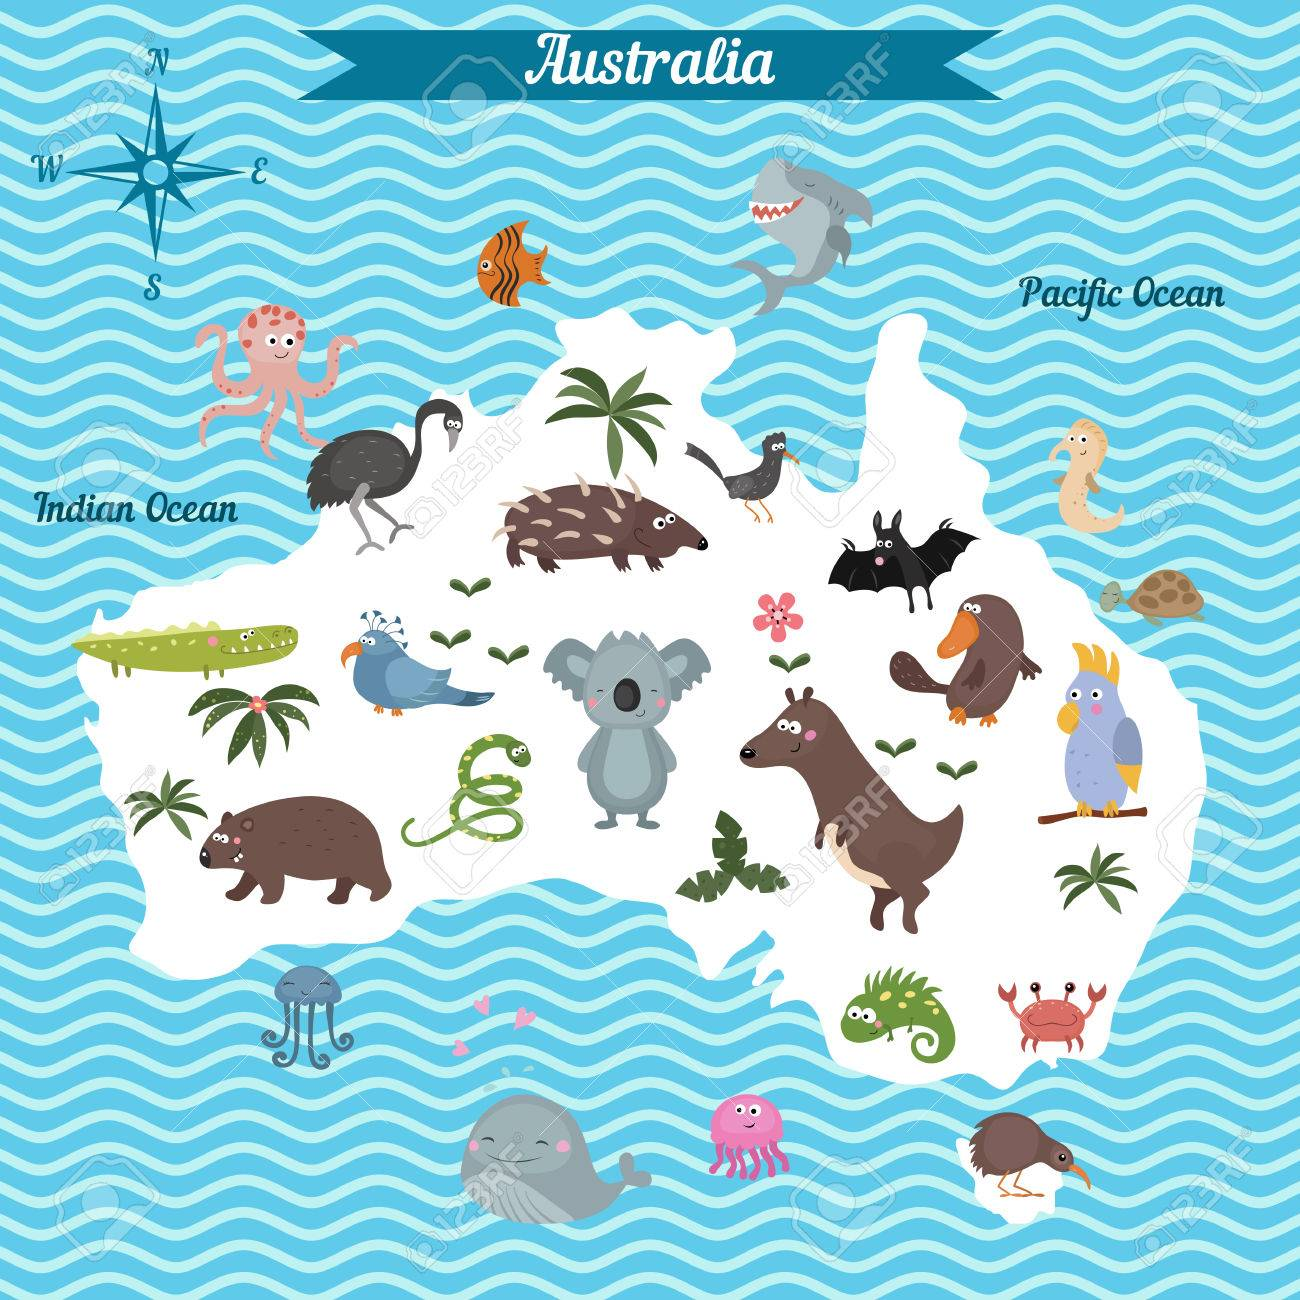 cartoon map of australia continent with different animals colorful cartoon illustration for children and kids